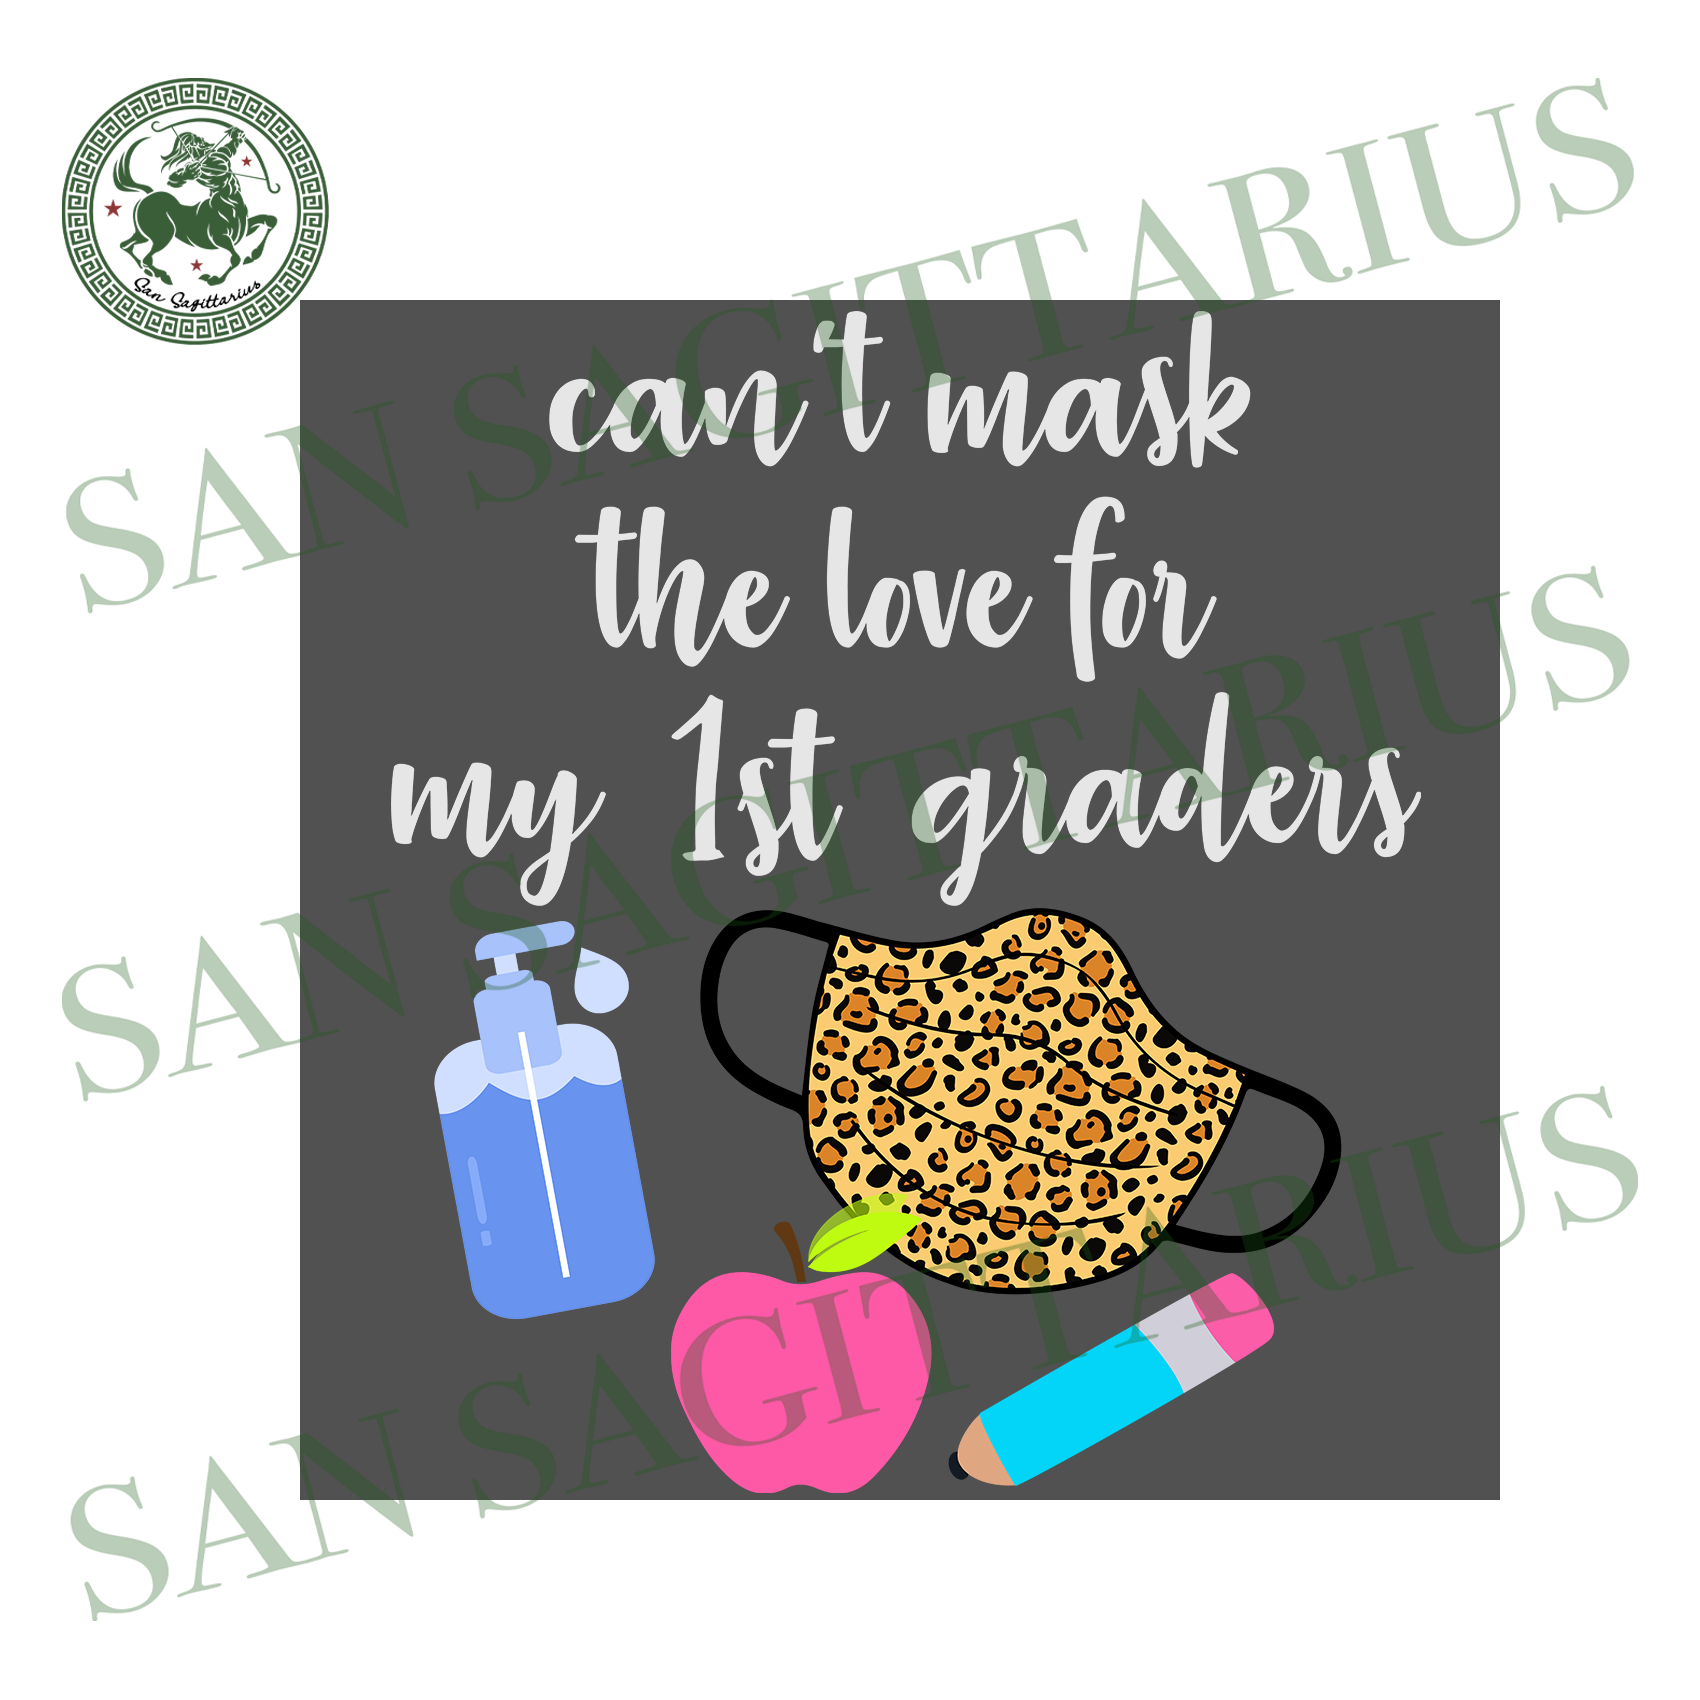 Cant mask the love for my 1st graders svg,svg,teach svg,apple teacher svg,teacher online teach svg,1st graders school svg,svg cricut, silhouette svg files, cricut svg, silhouette svg, svg des